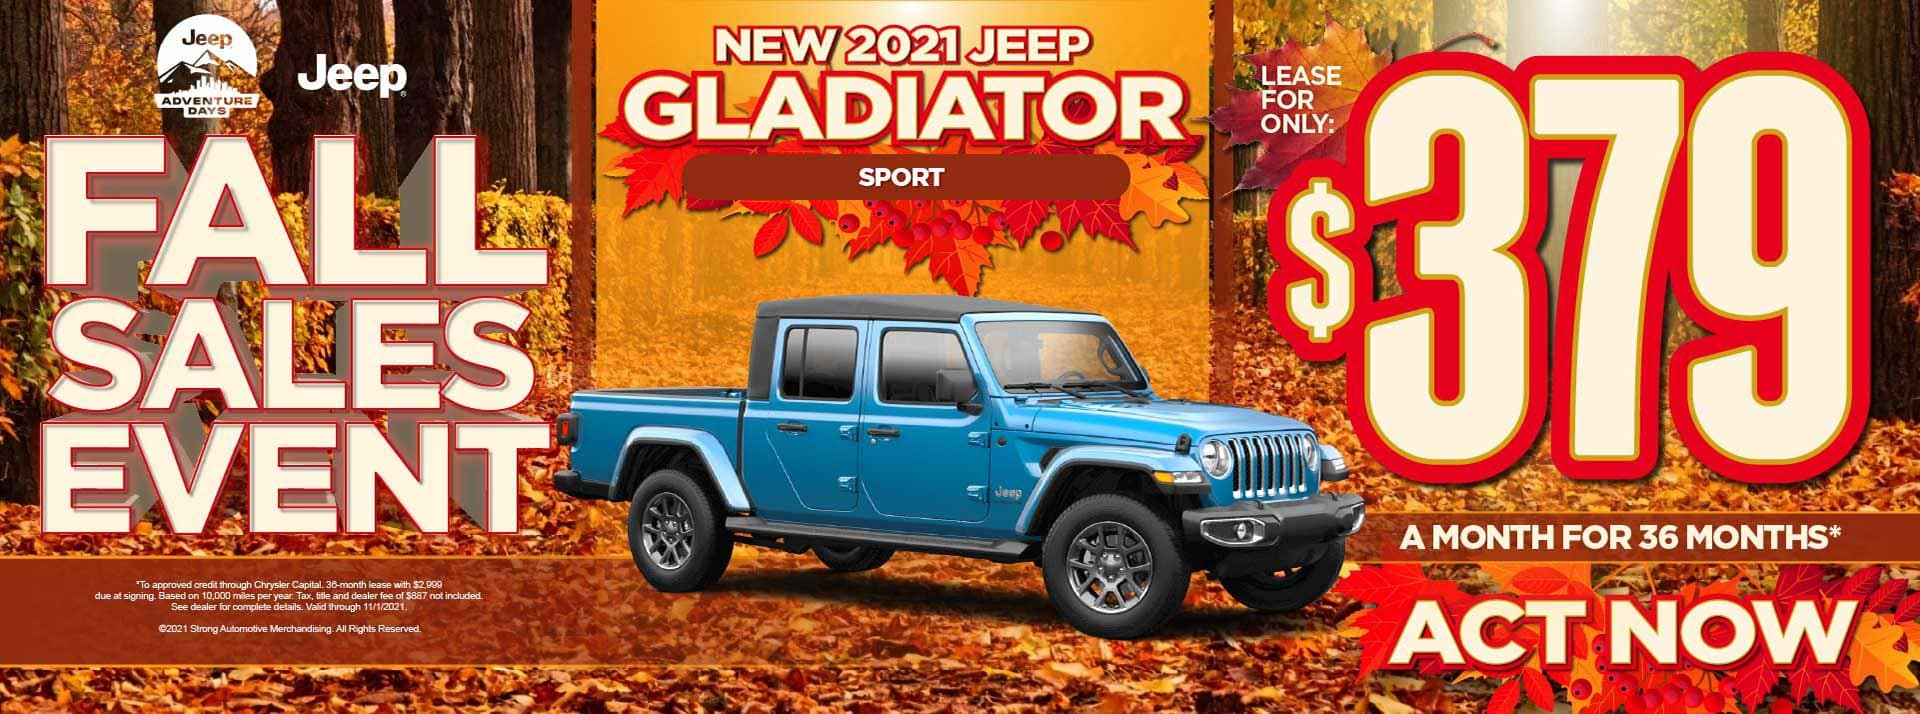 New 2021 Jeep Gladiator Sport - $379 / mo - ACT NOW